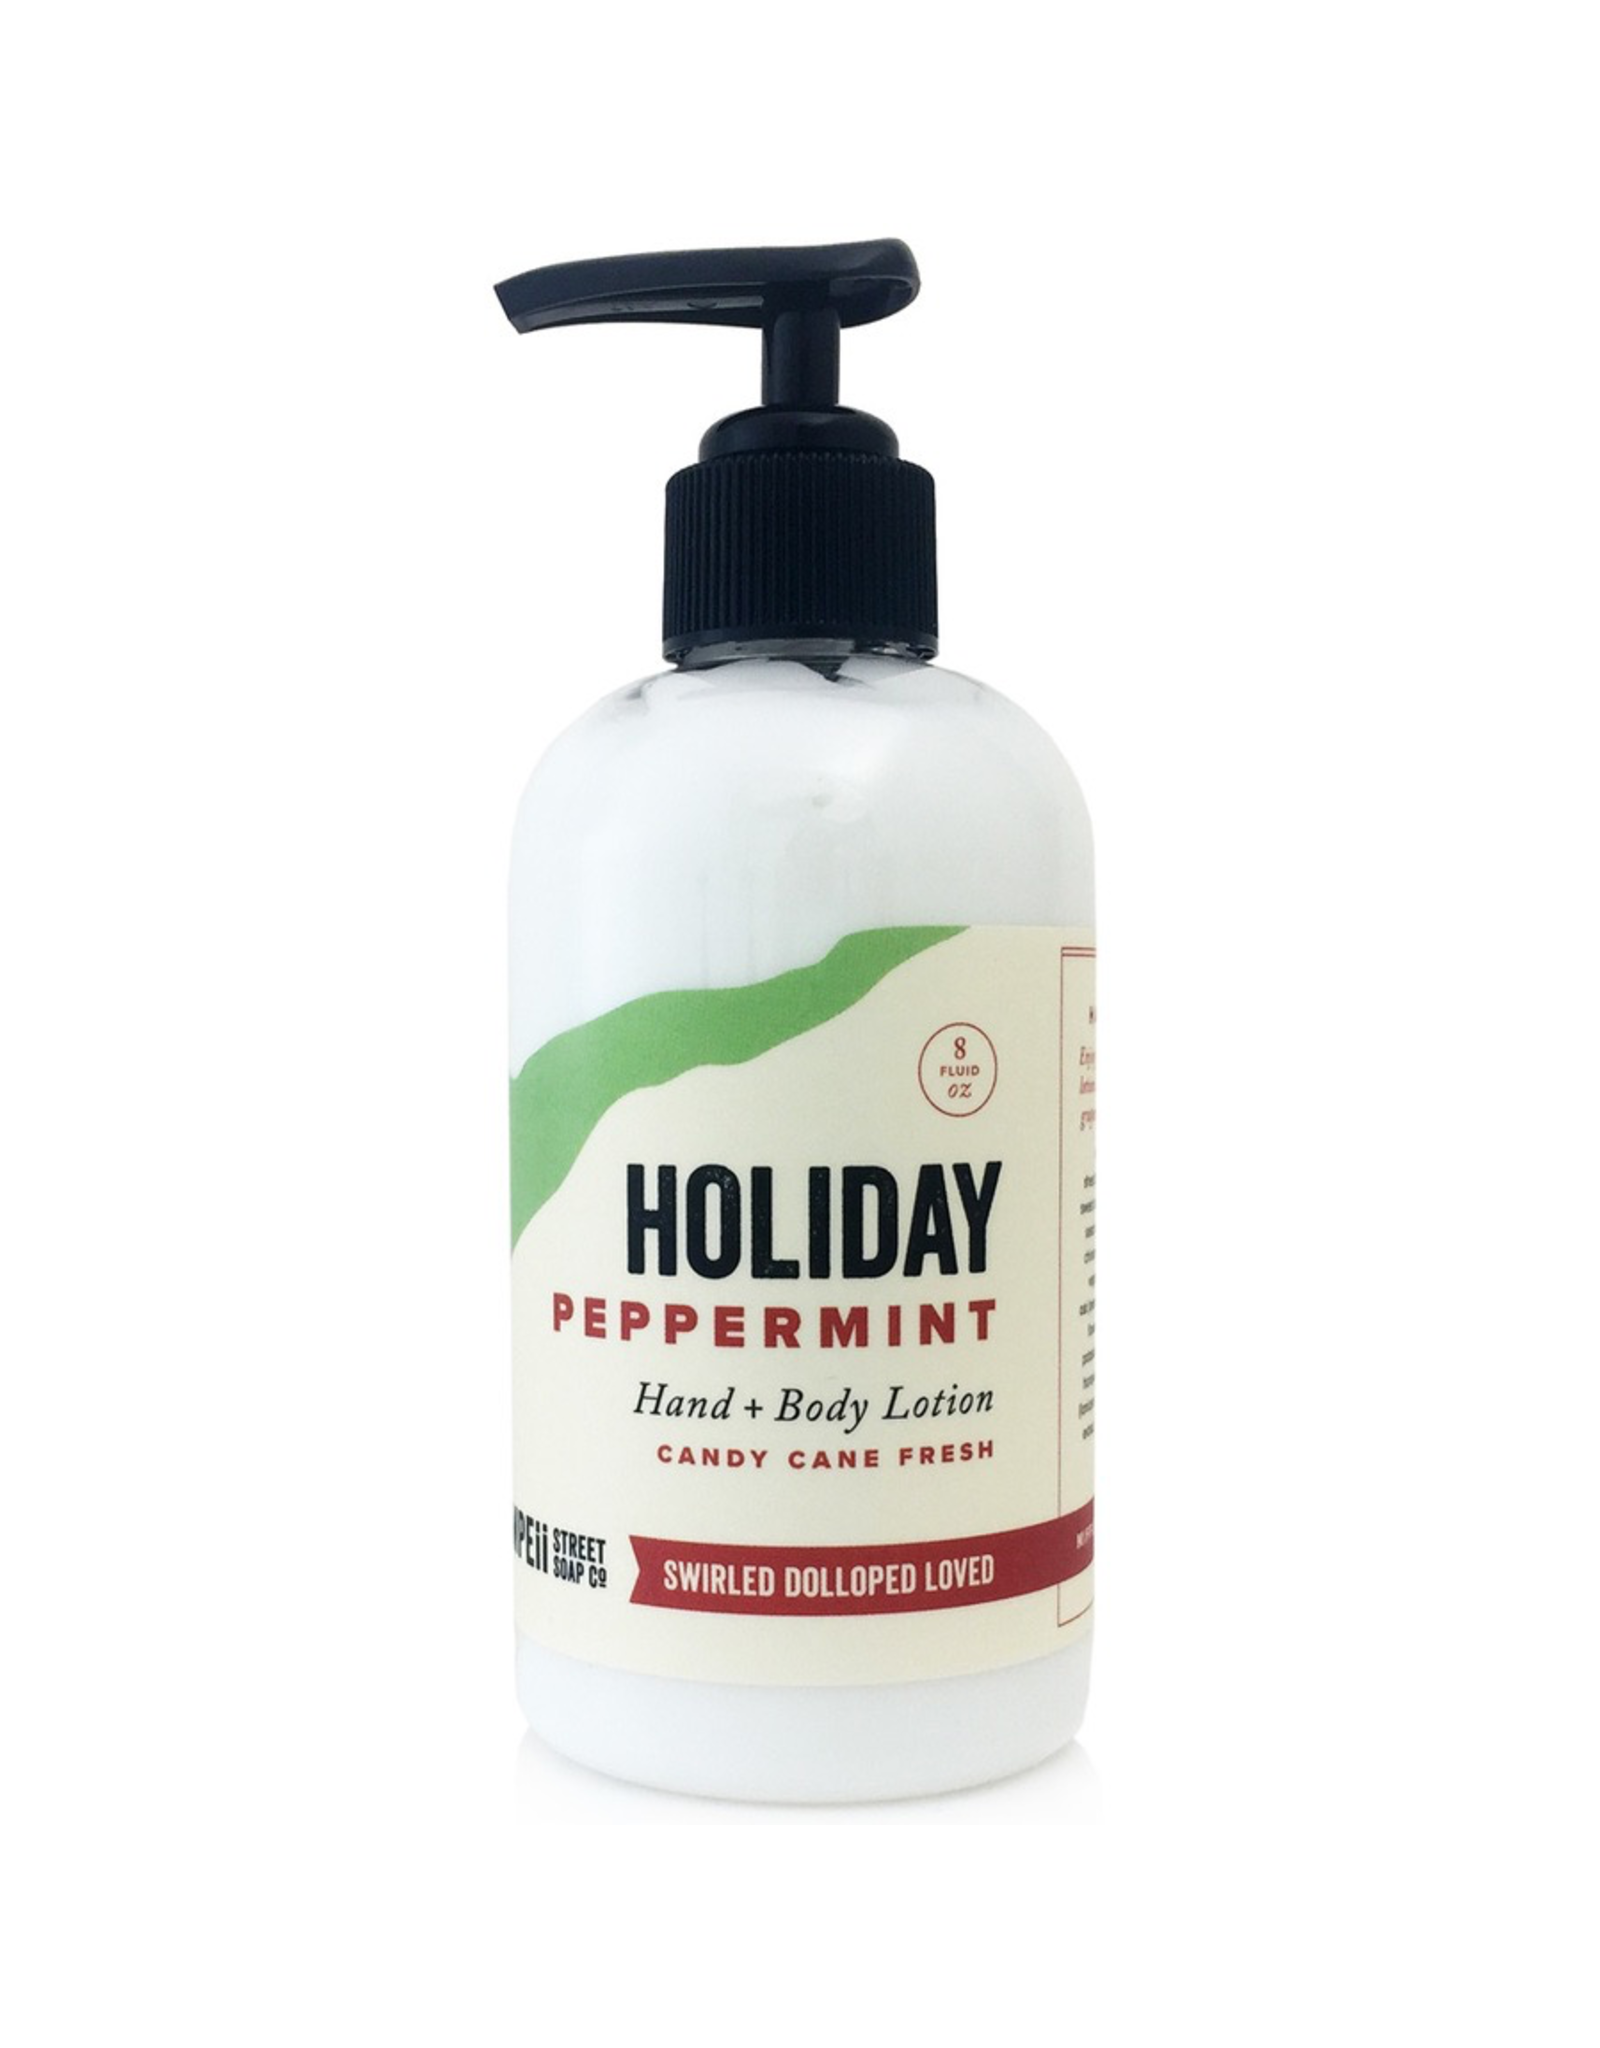 Pompeii Hand + Body Lotion Holiday Peppermint 8 oz.